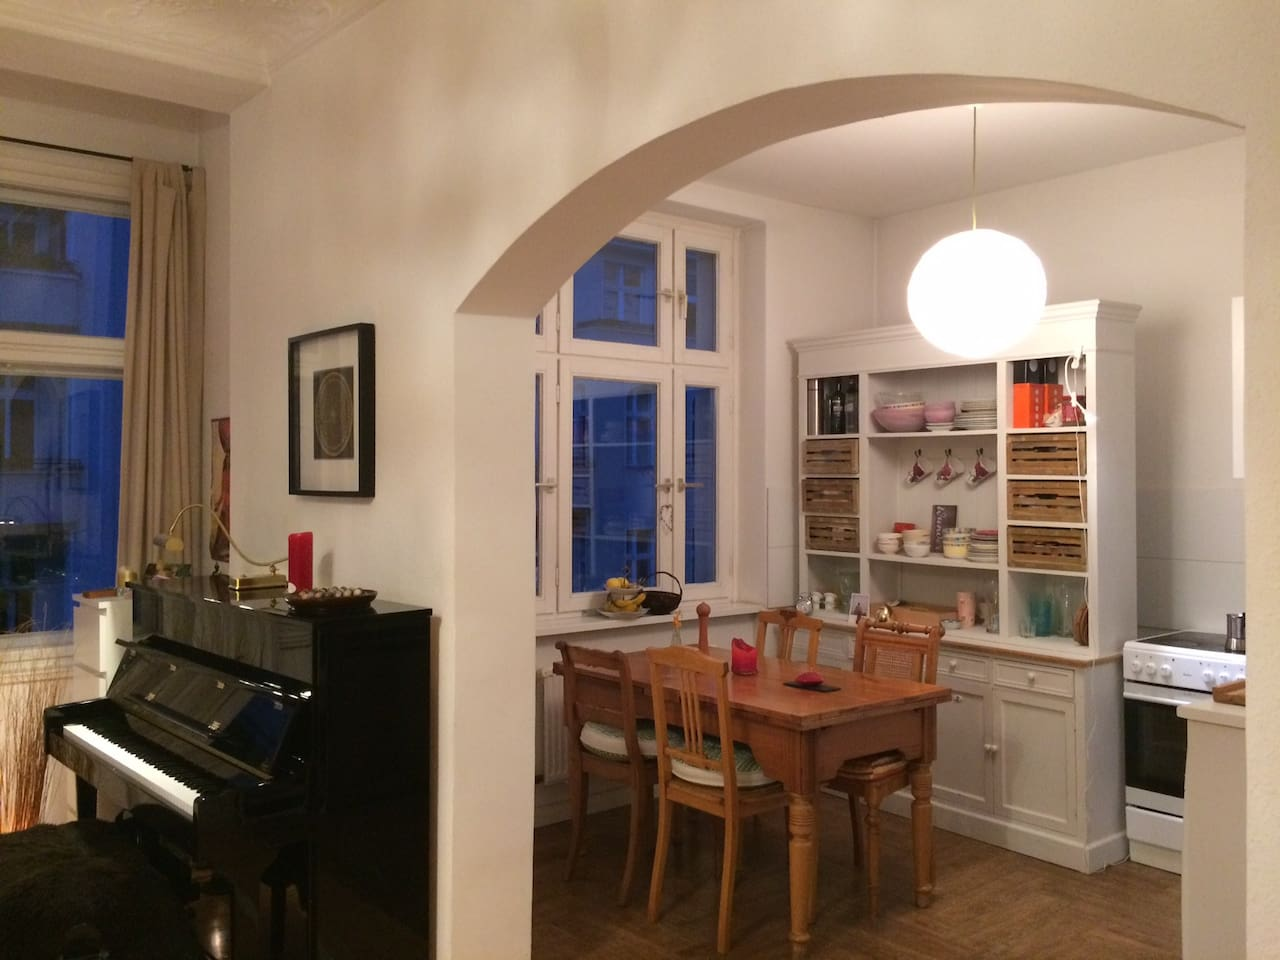 Spacious living room and kitchen